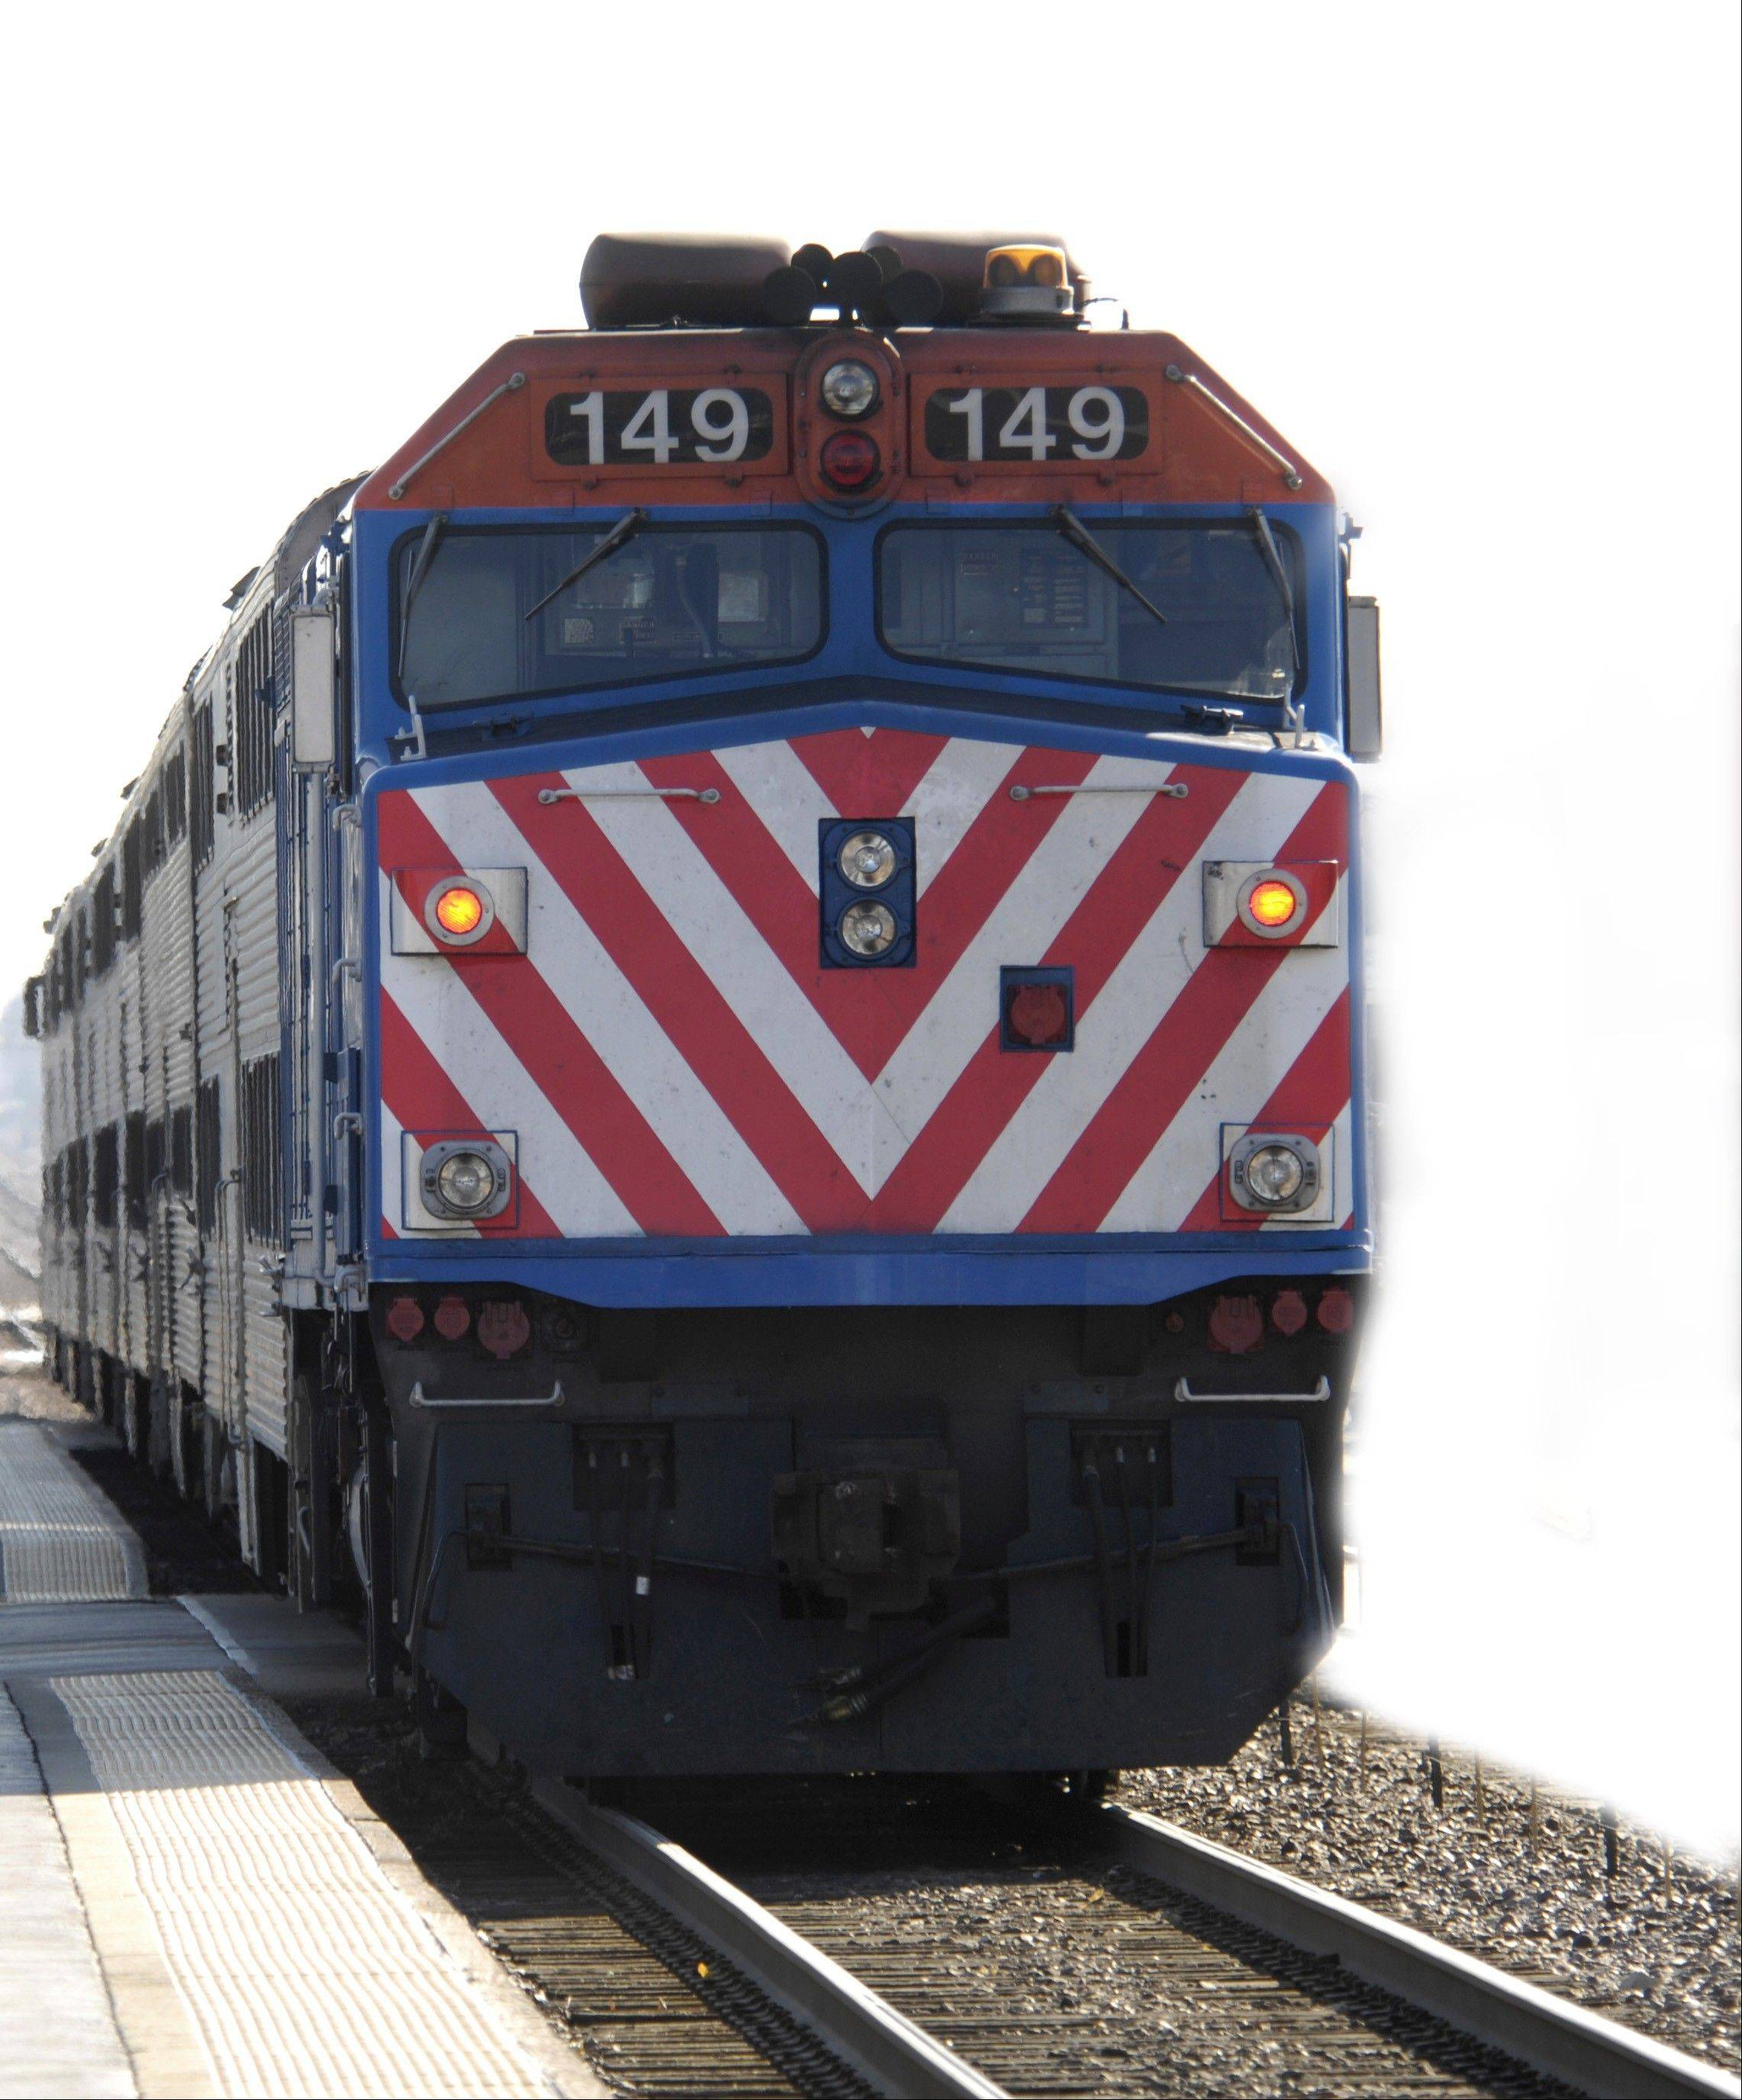 Metra 10-ride tickets go up 11 percent Friday. The increase comes up top of increases of 29 to 30 percent on 10-ride and monthly tickets a year ago.